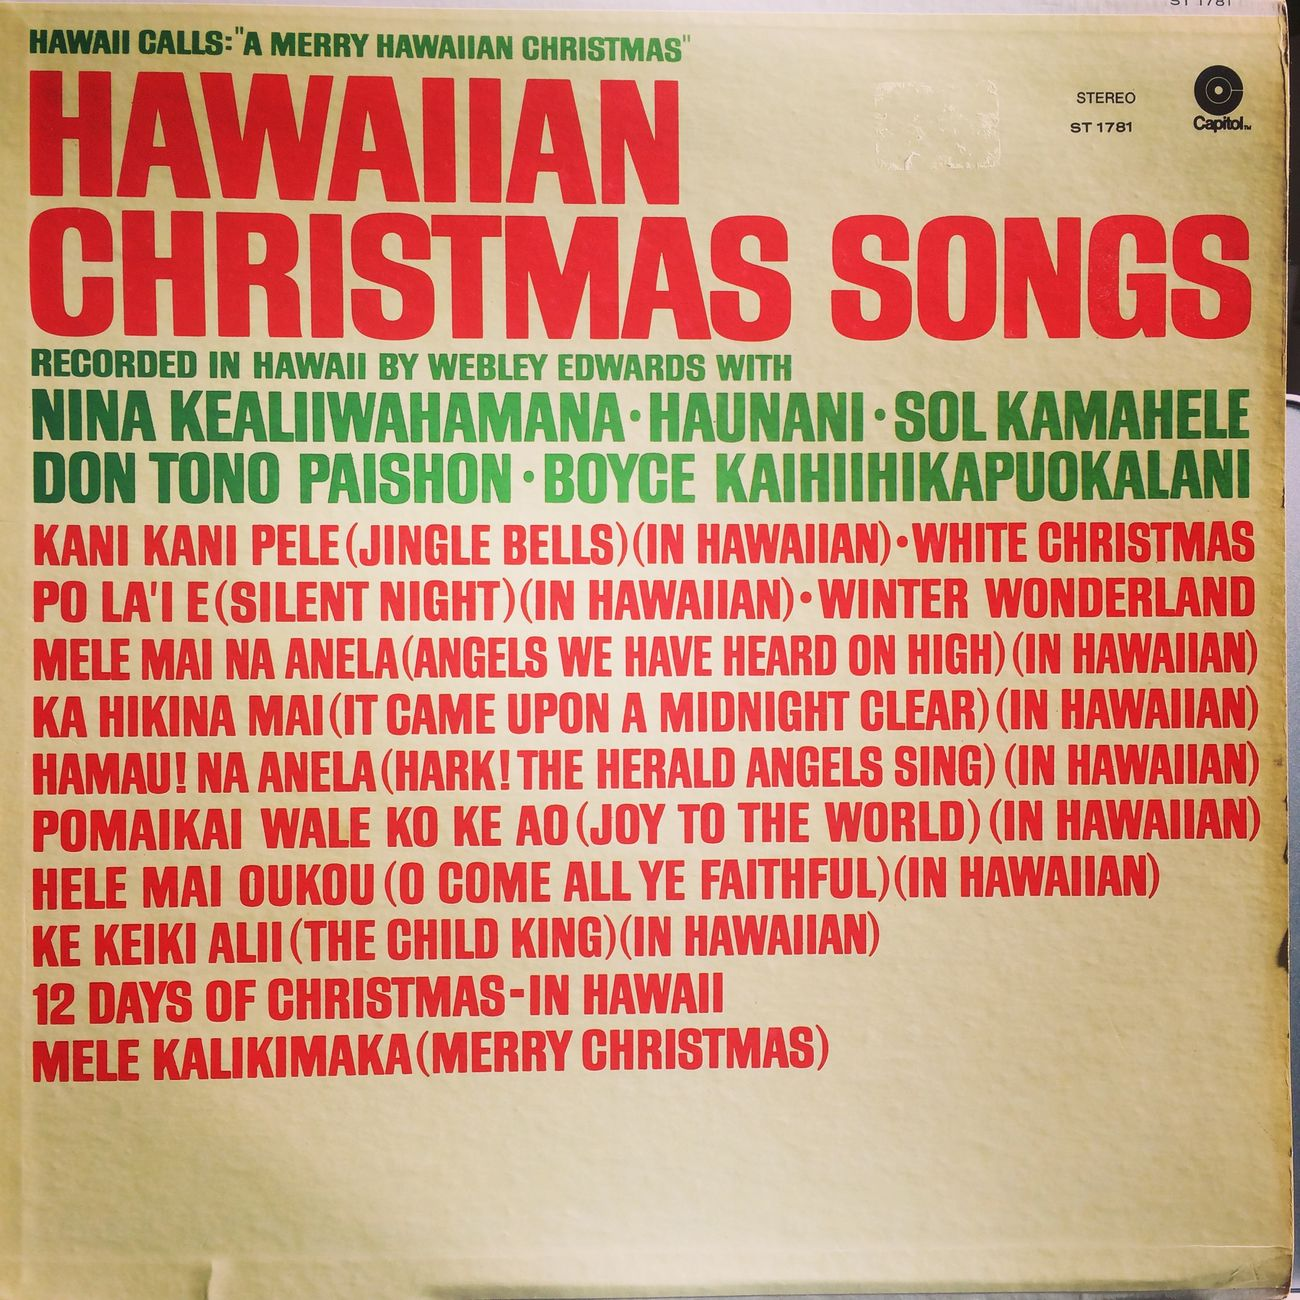 Enjoying Life Hawaiicalls Hawaiian Music Christmas Song Hawaii Calls Vinyl Analog Records